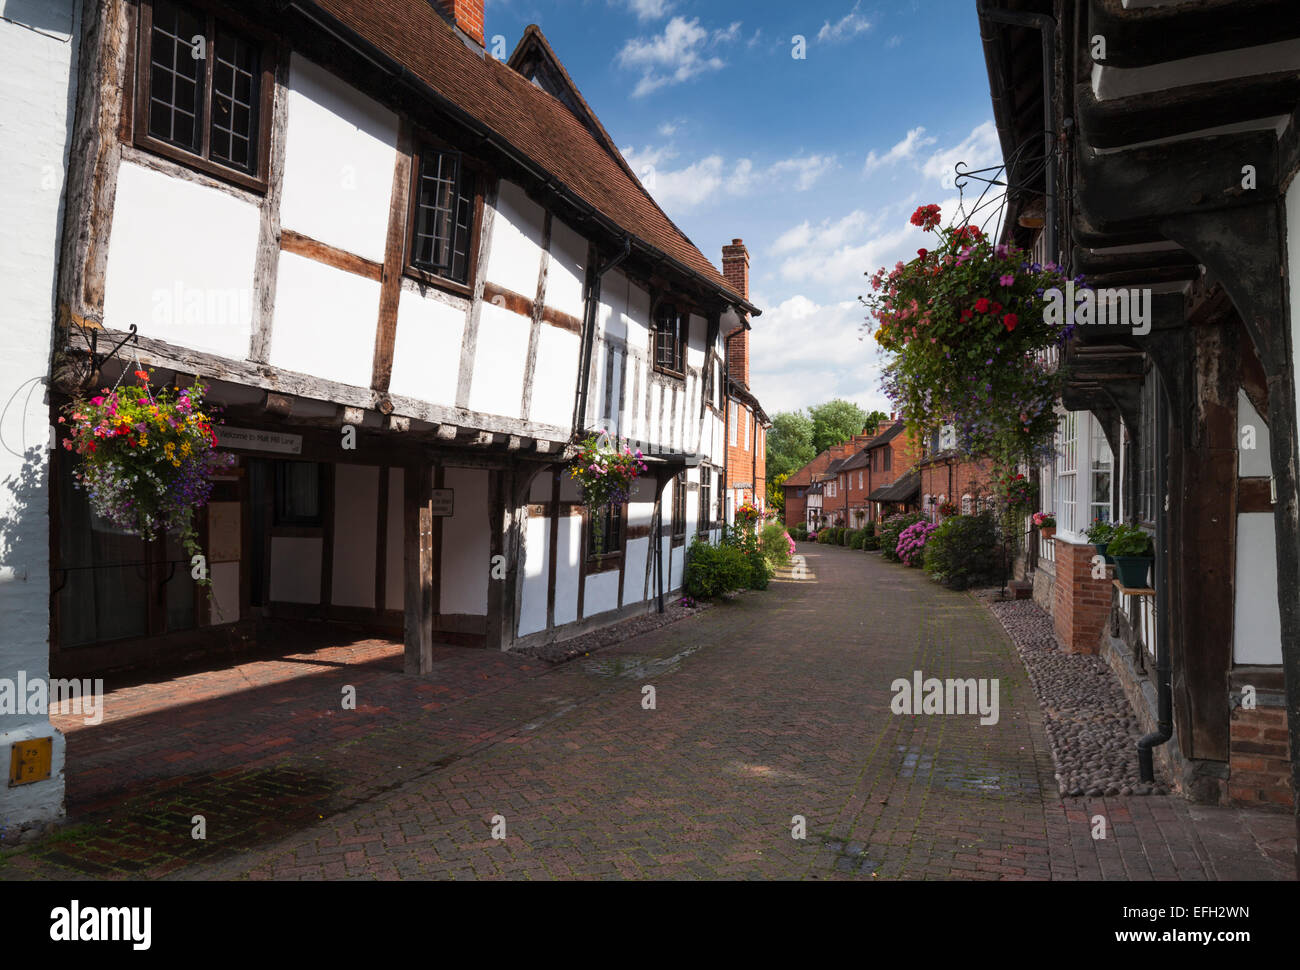 Beside medieval timber-framed houses looking down the historic Malt Mill Lane in Alcester, Warwickshire, England - Stock Image